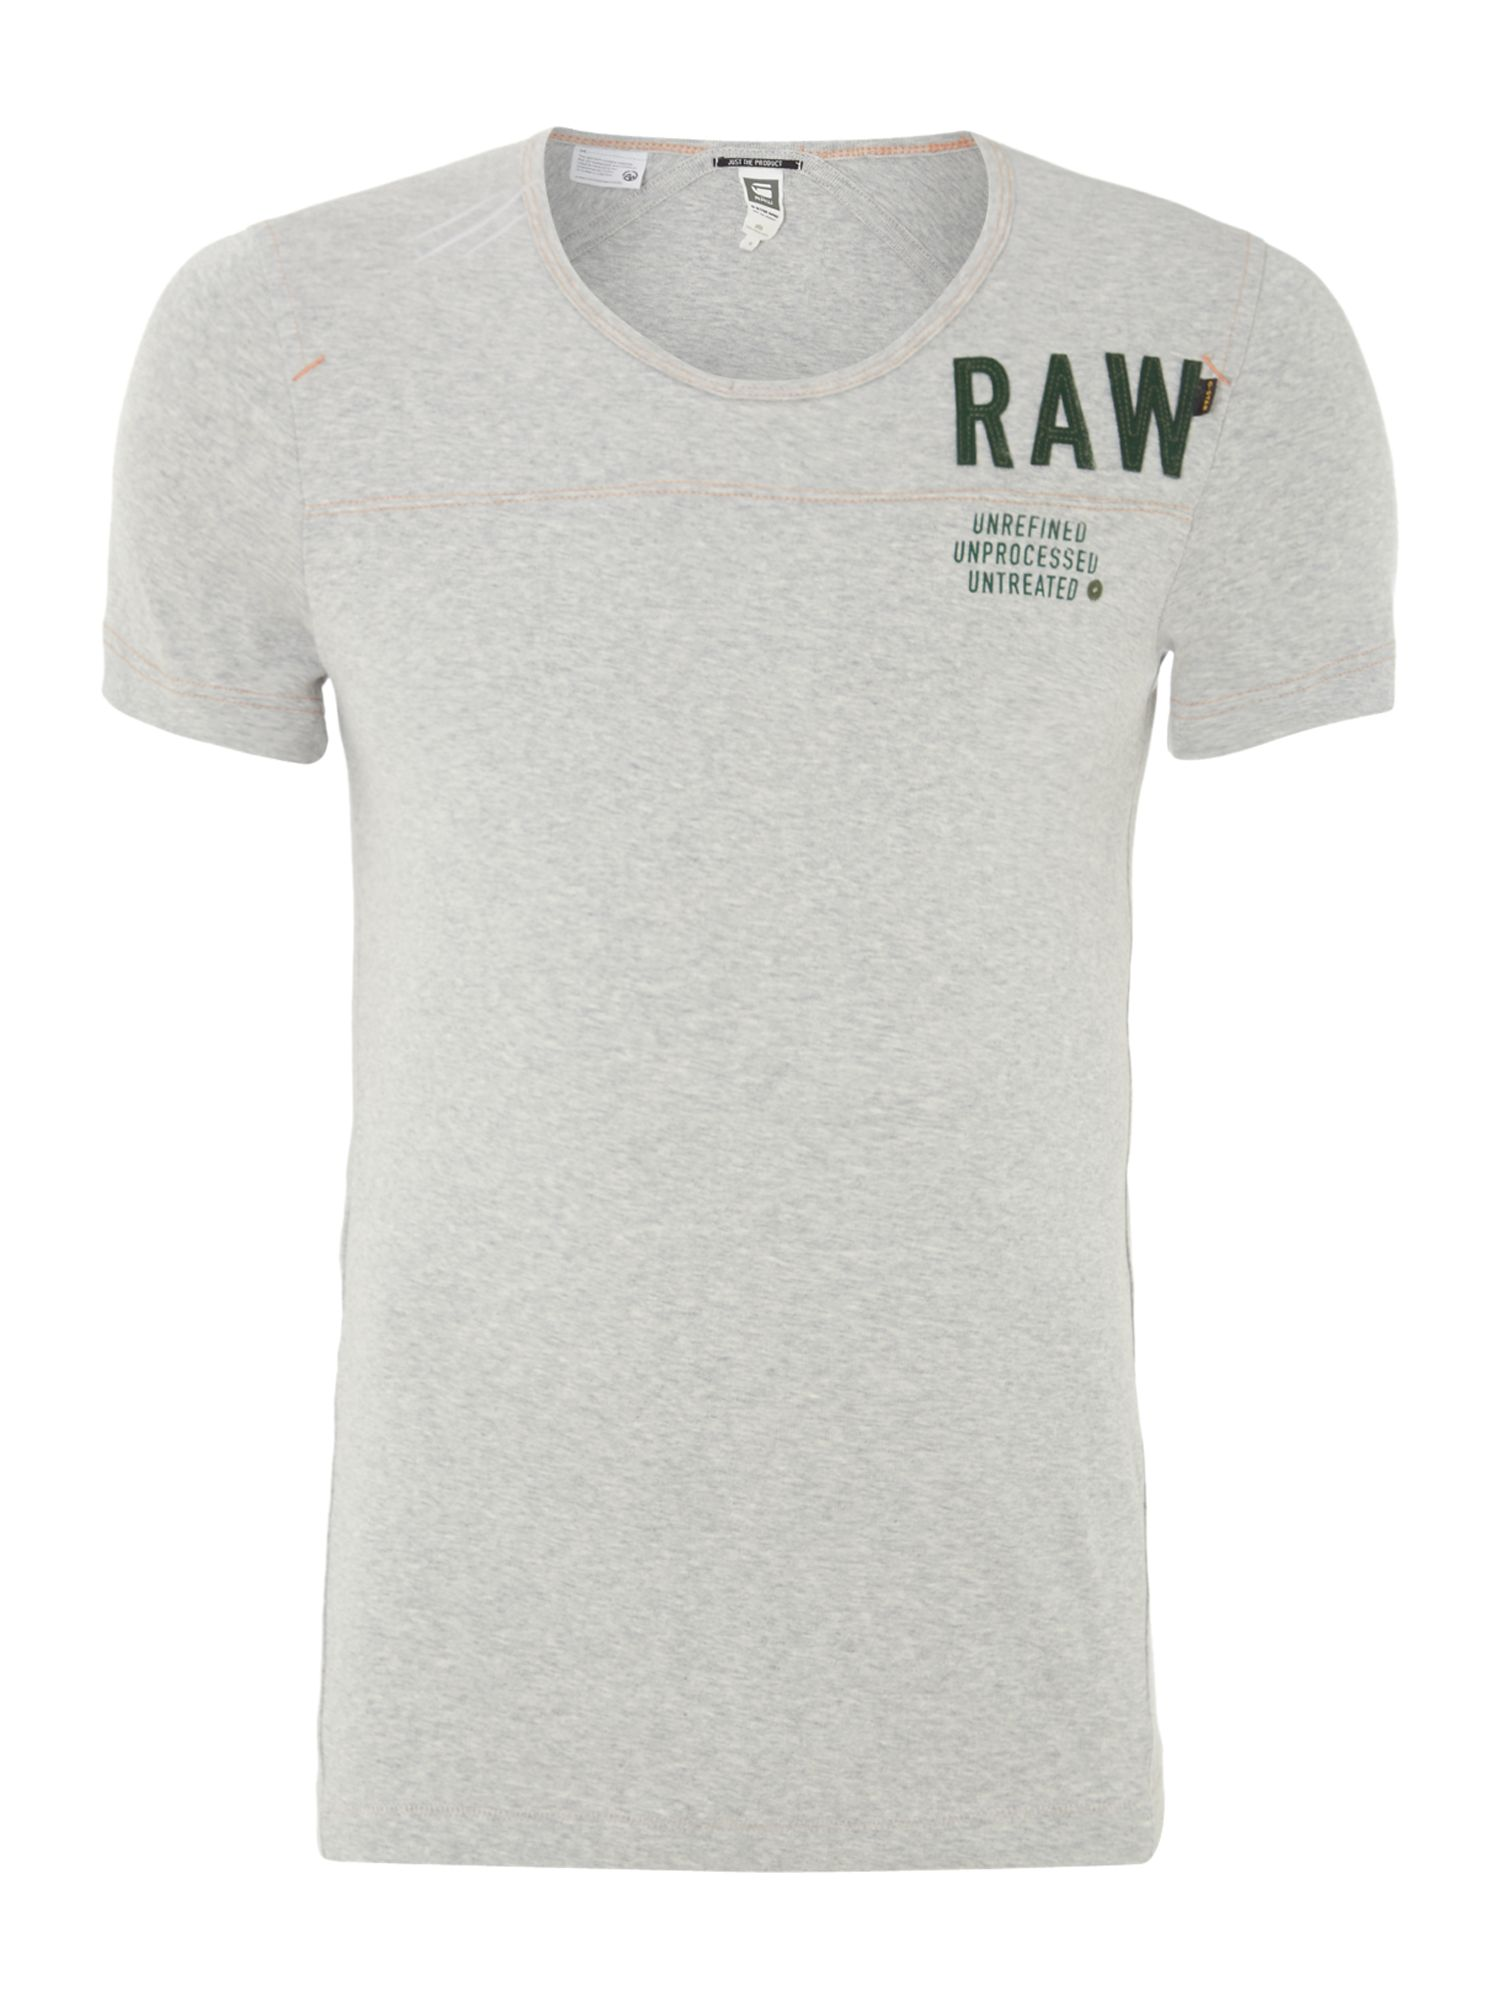 Ace raw logo printed t-shirt